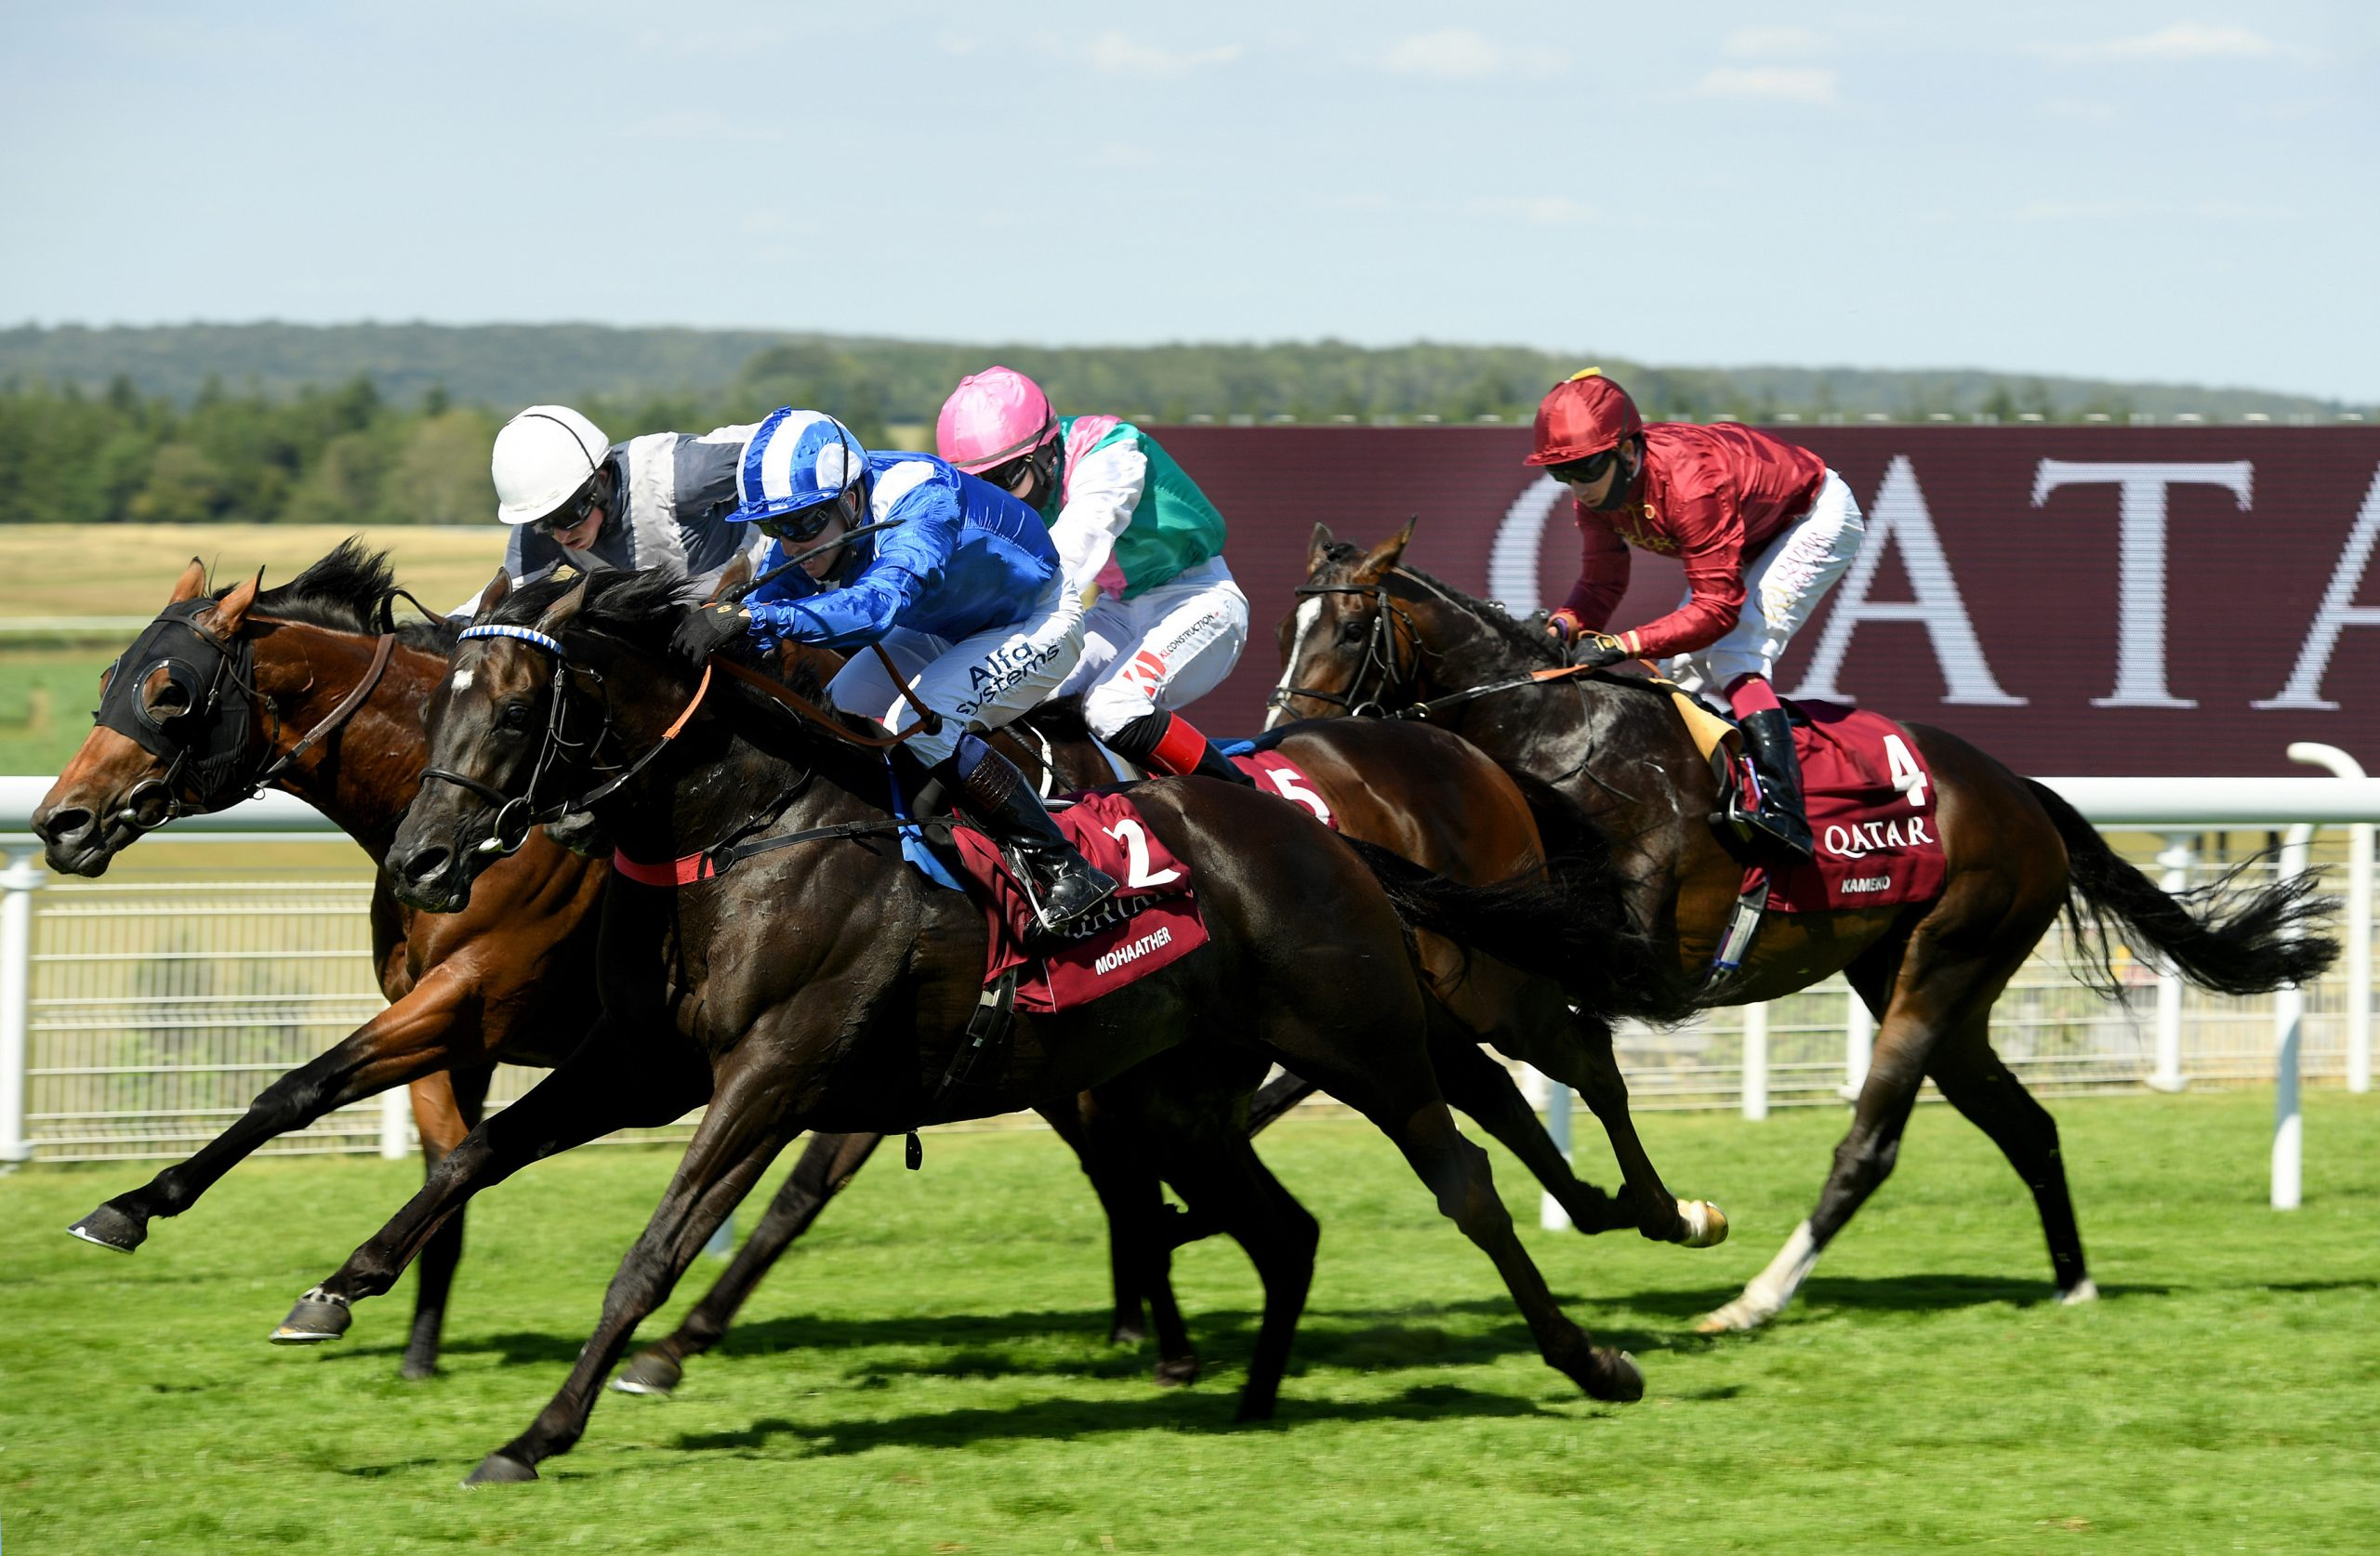 Mohaather winning the Group 1 Sussex Stakes. Credit: Bill Selwyn